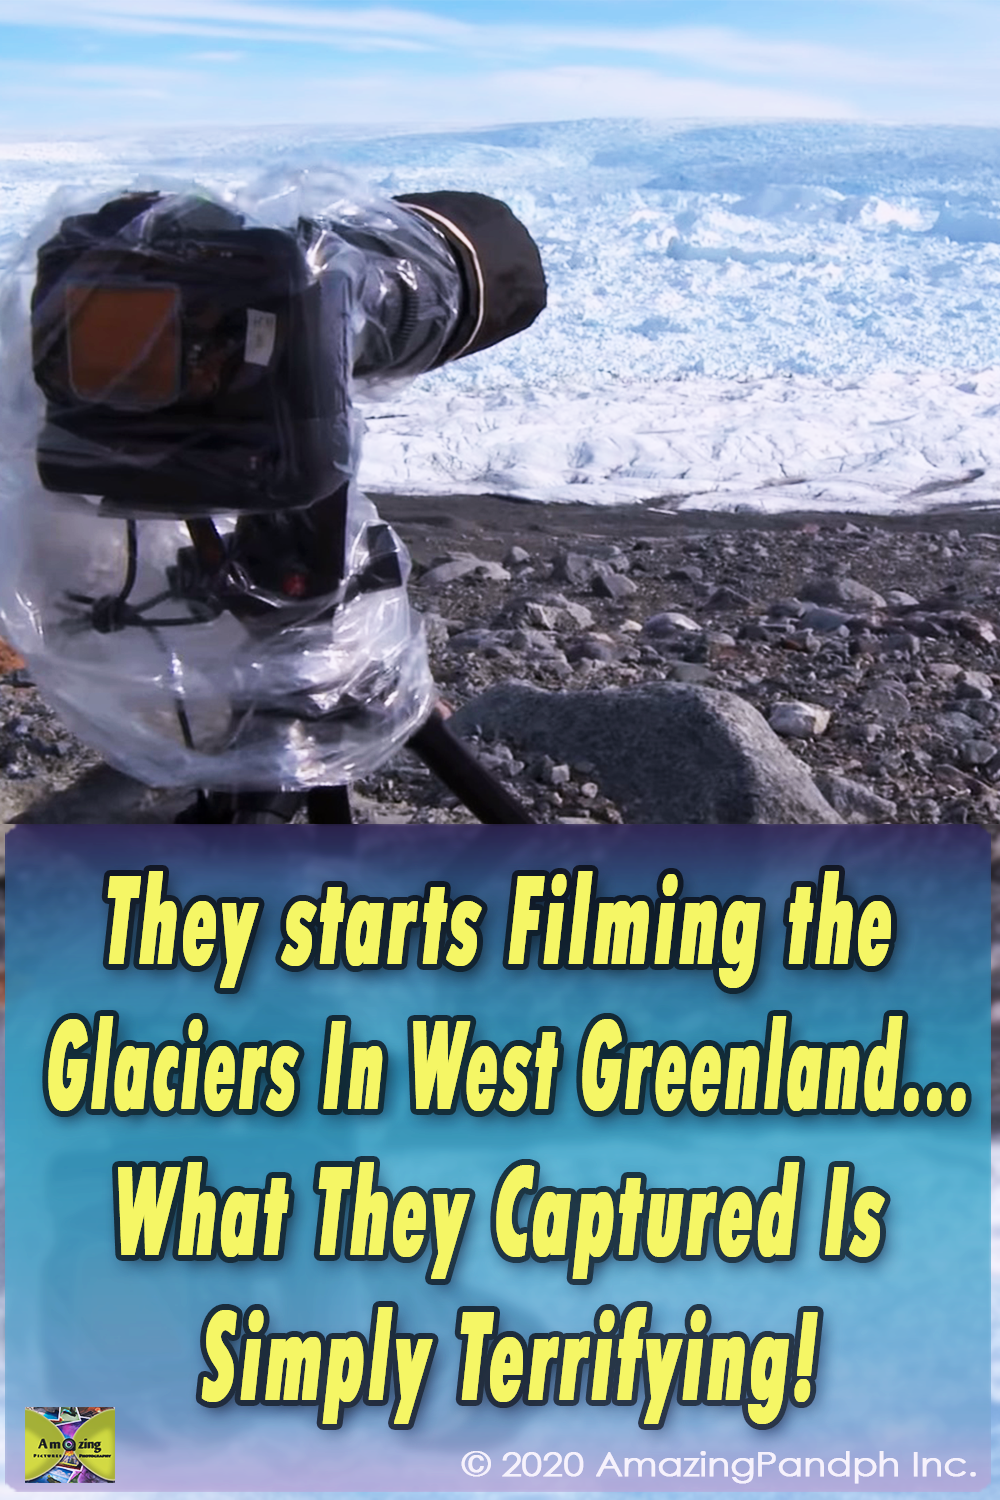 viral,video,viral video,amazing,most viewed,most shared,most watched,glaciers,greenland,earthwarming,disasters,mother nature,greenland,rare video,rare filming, largest glacier calving ,glacier calving